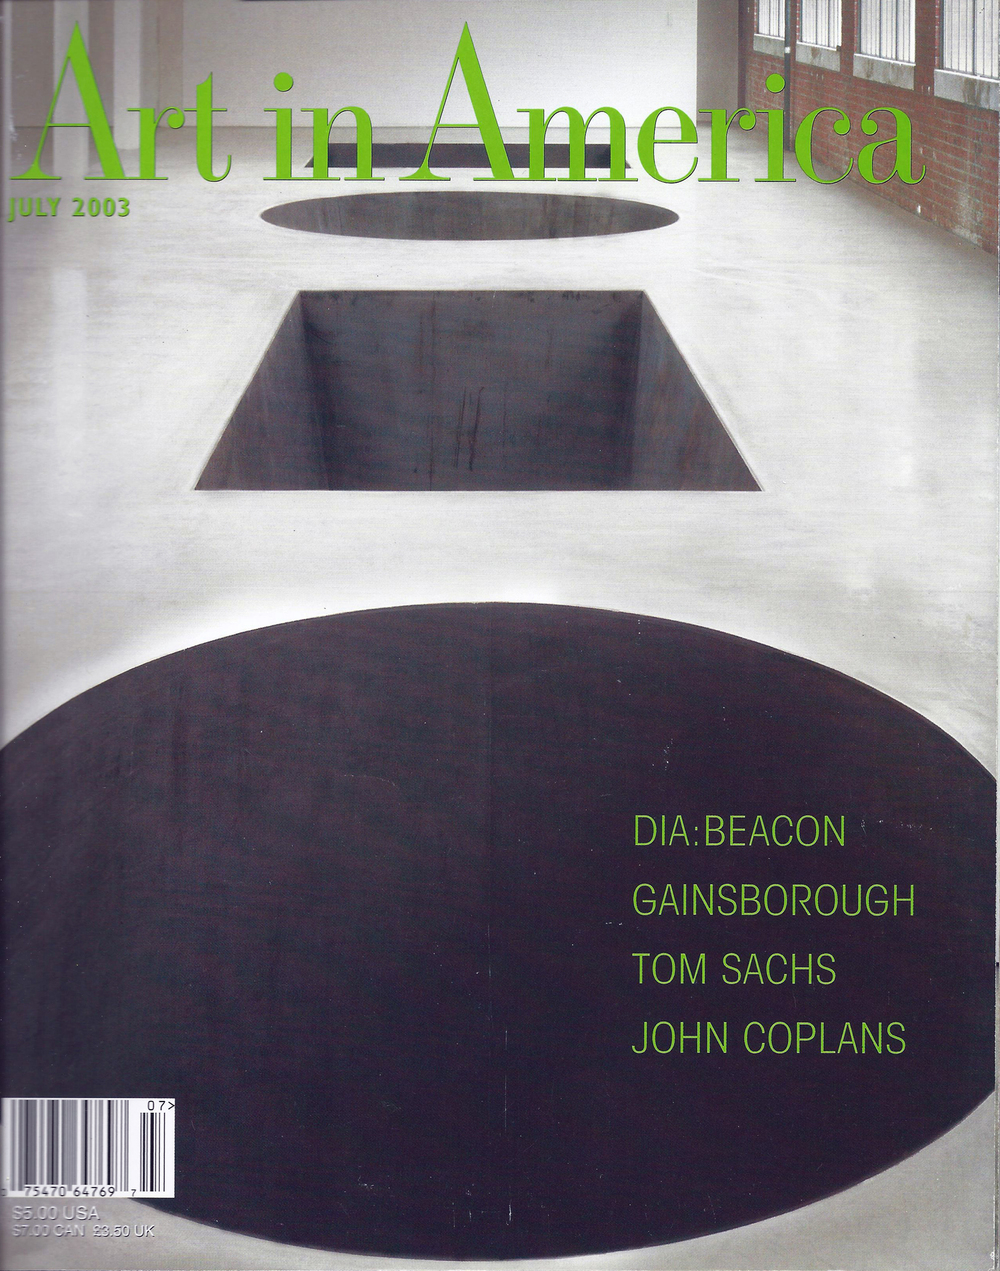 Art in America - July 2003.jpg